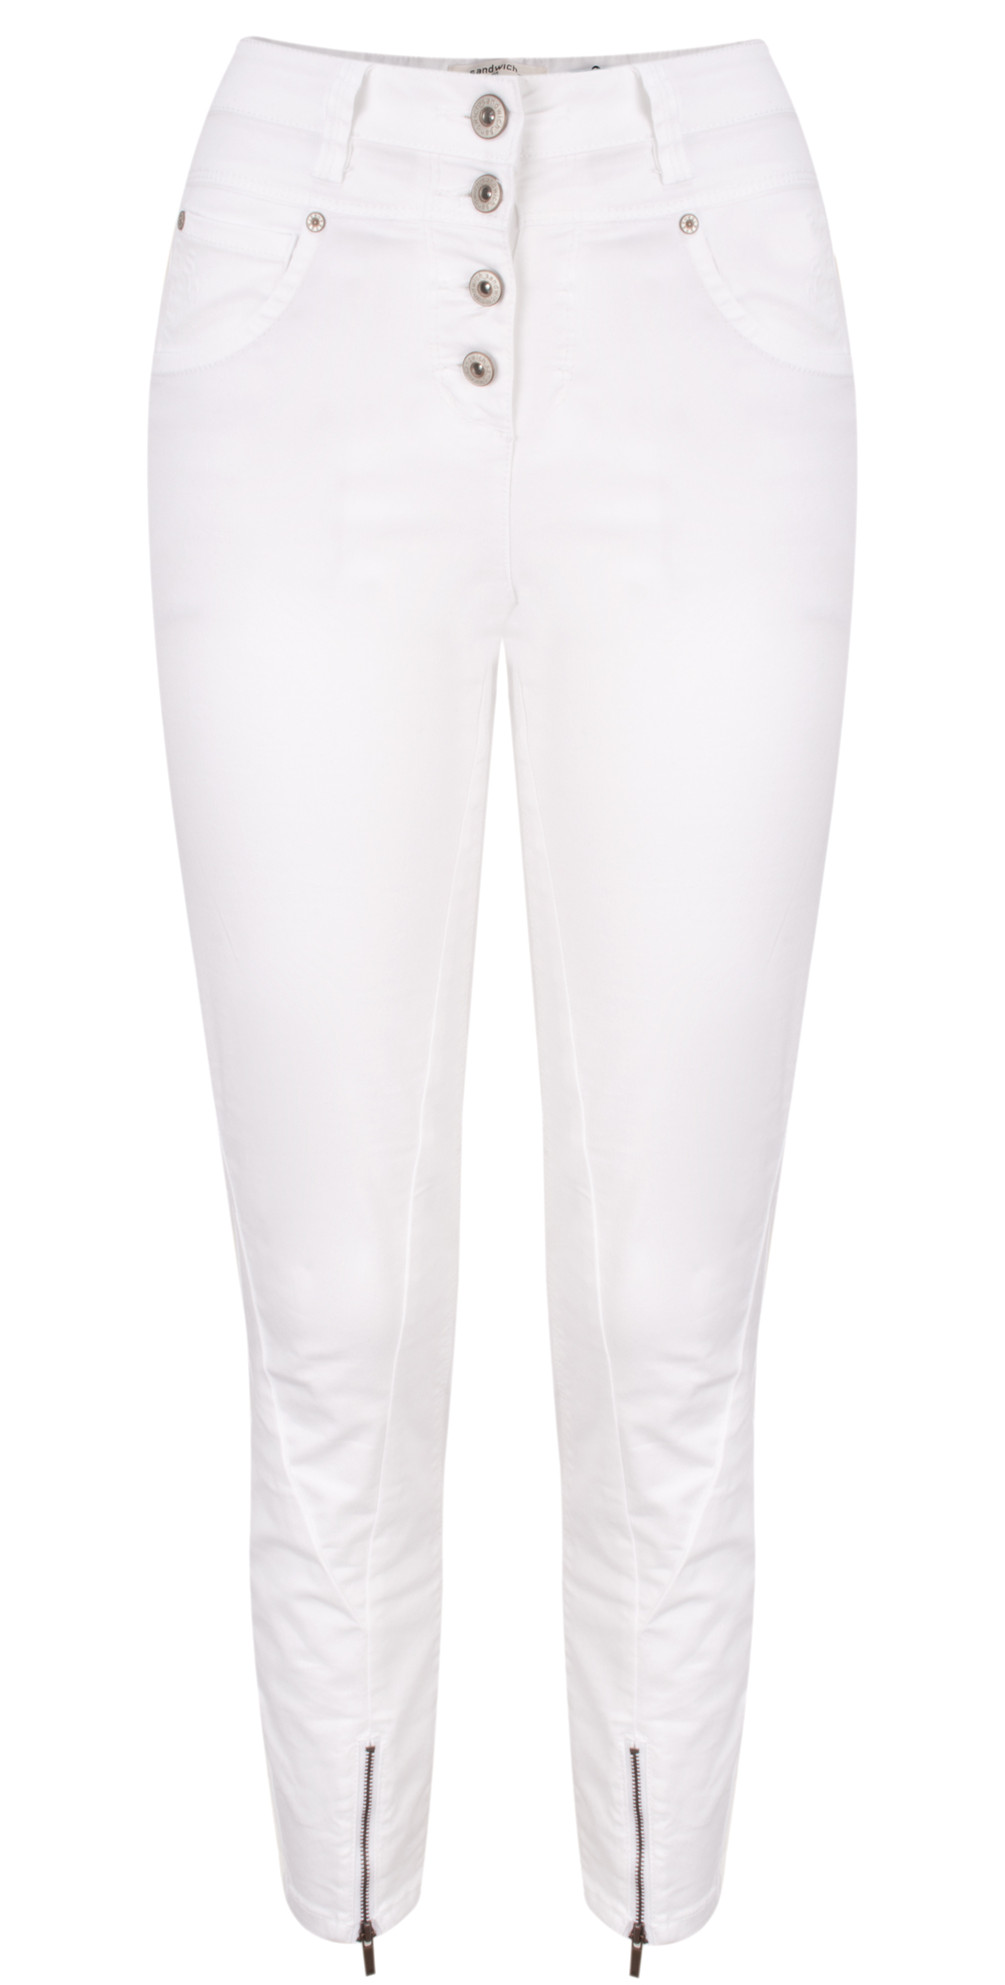 High Waist Stretch 7/8 Casual Trousers main image